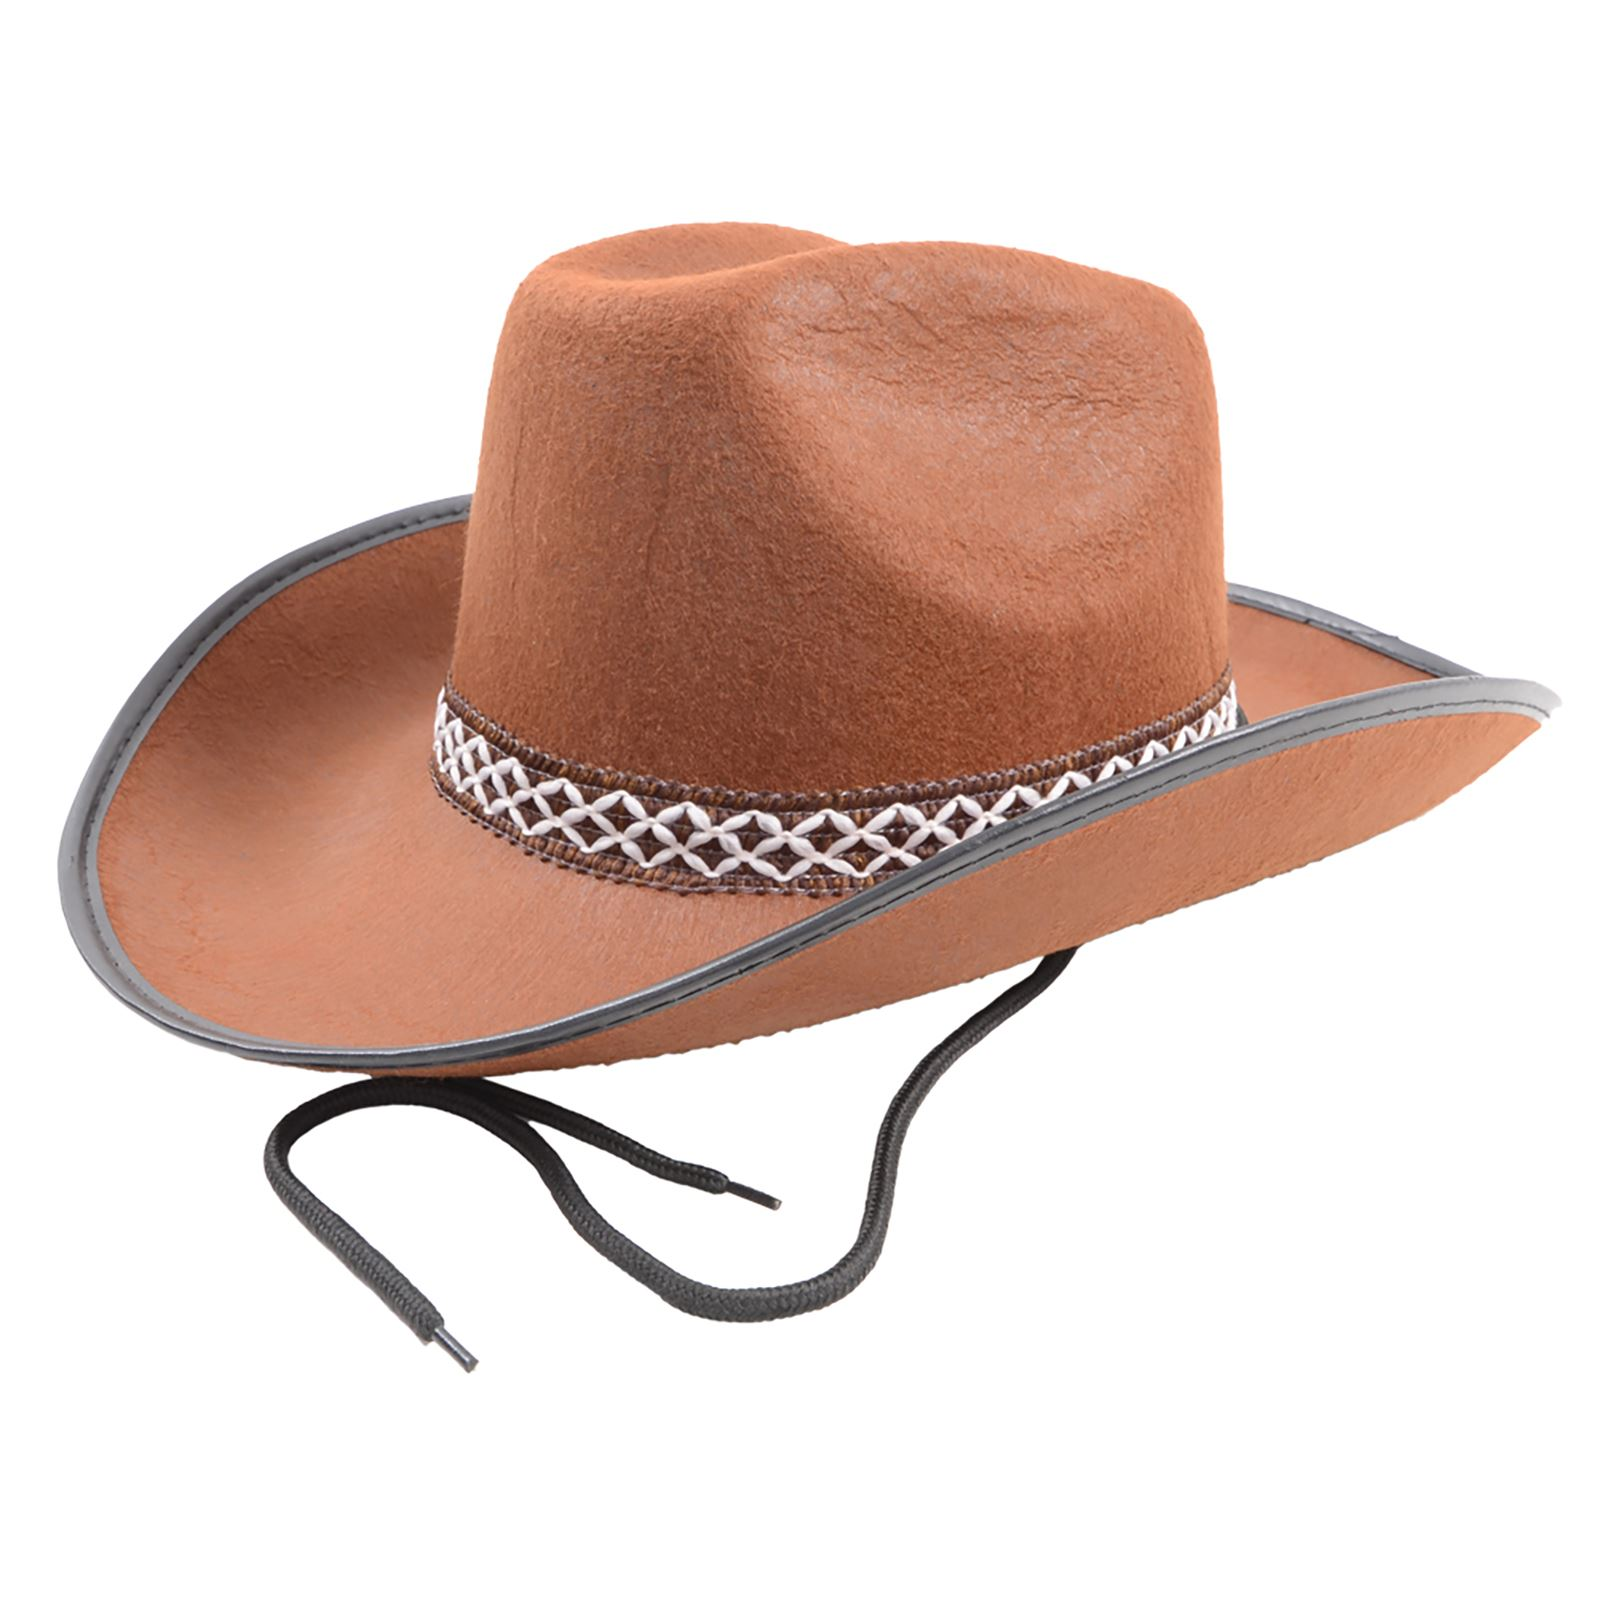 399f3ab6062fd Brown Felt Cowboy Cowgirl Wild West Sheriff Stetson Fancy Dress Party  Outfit Hat